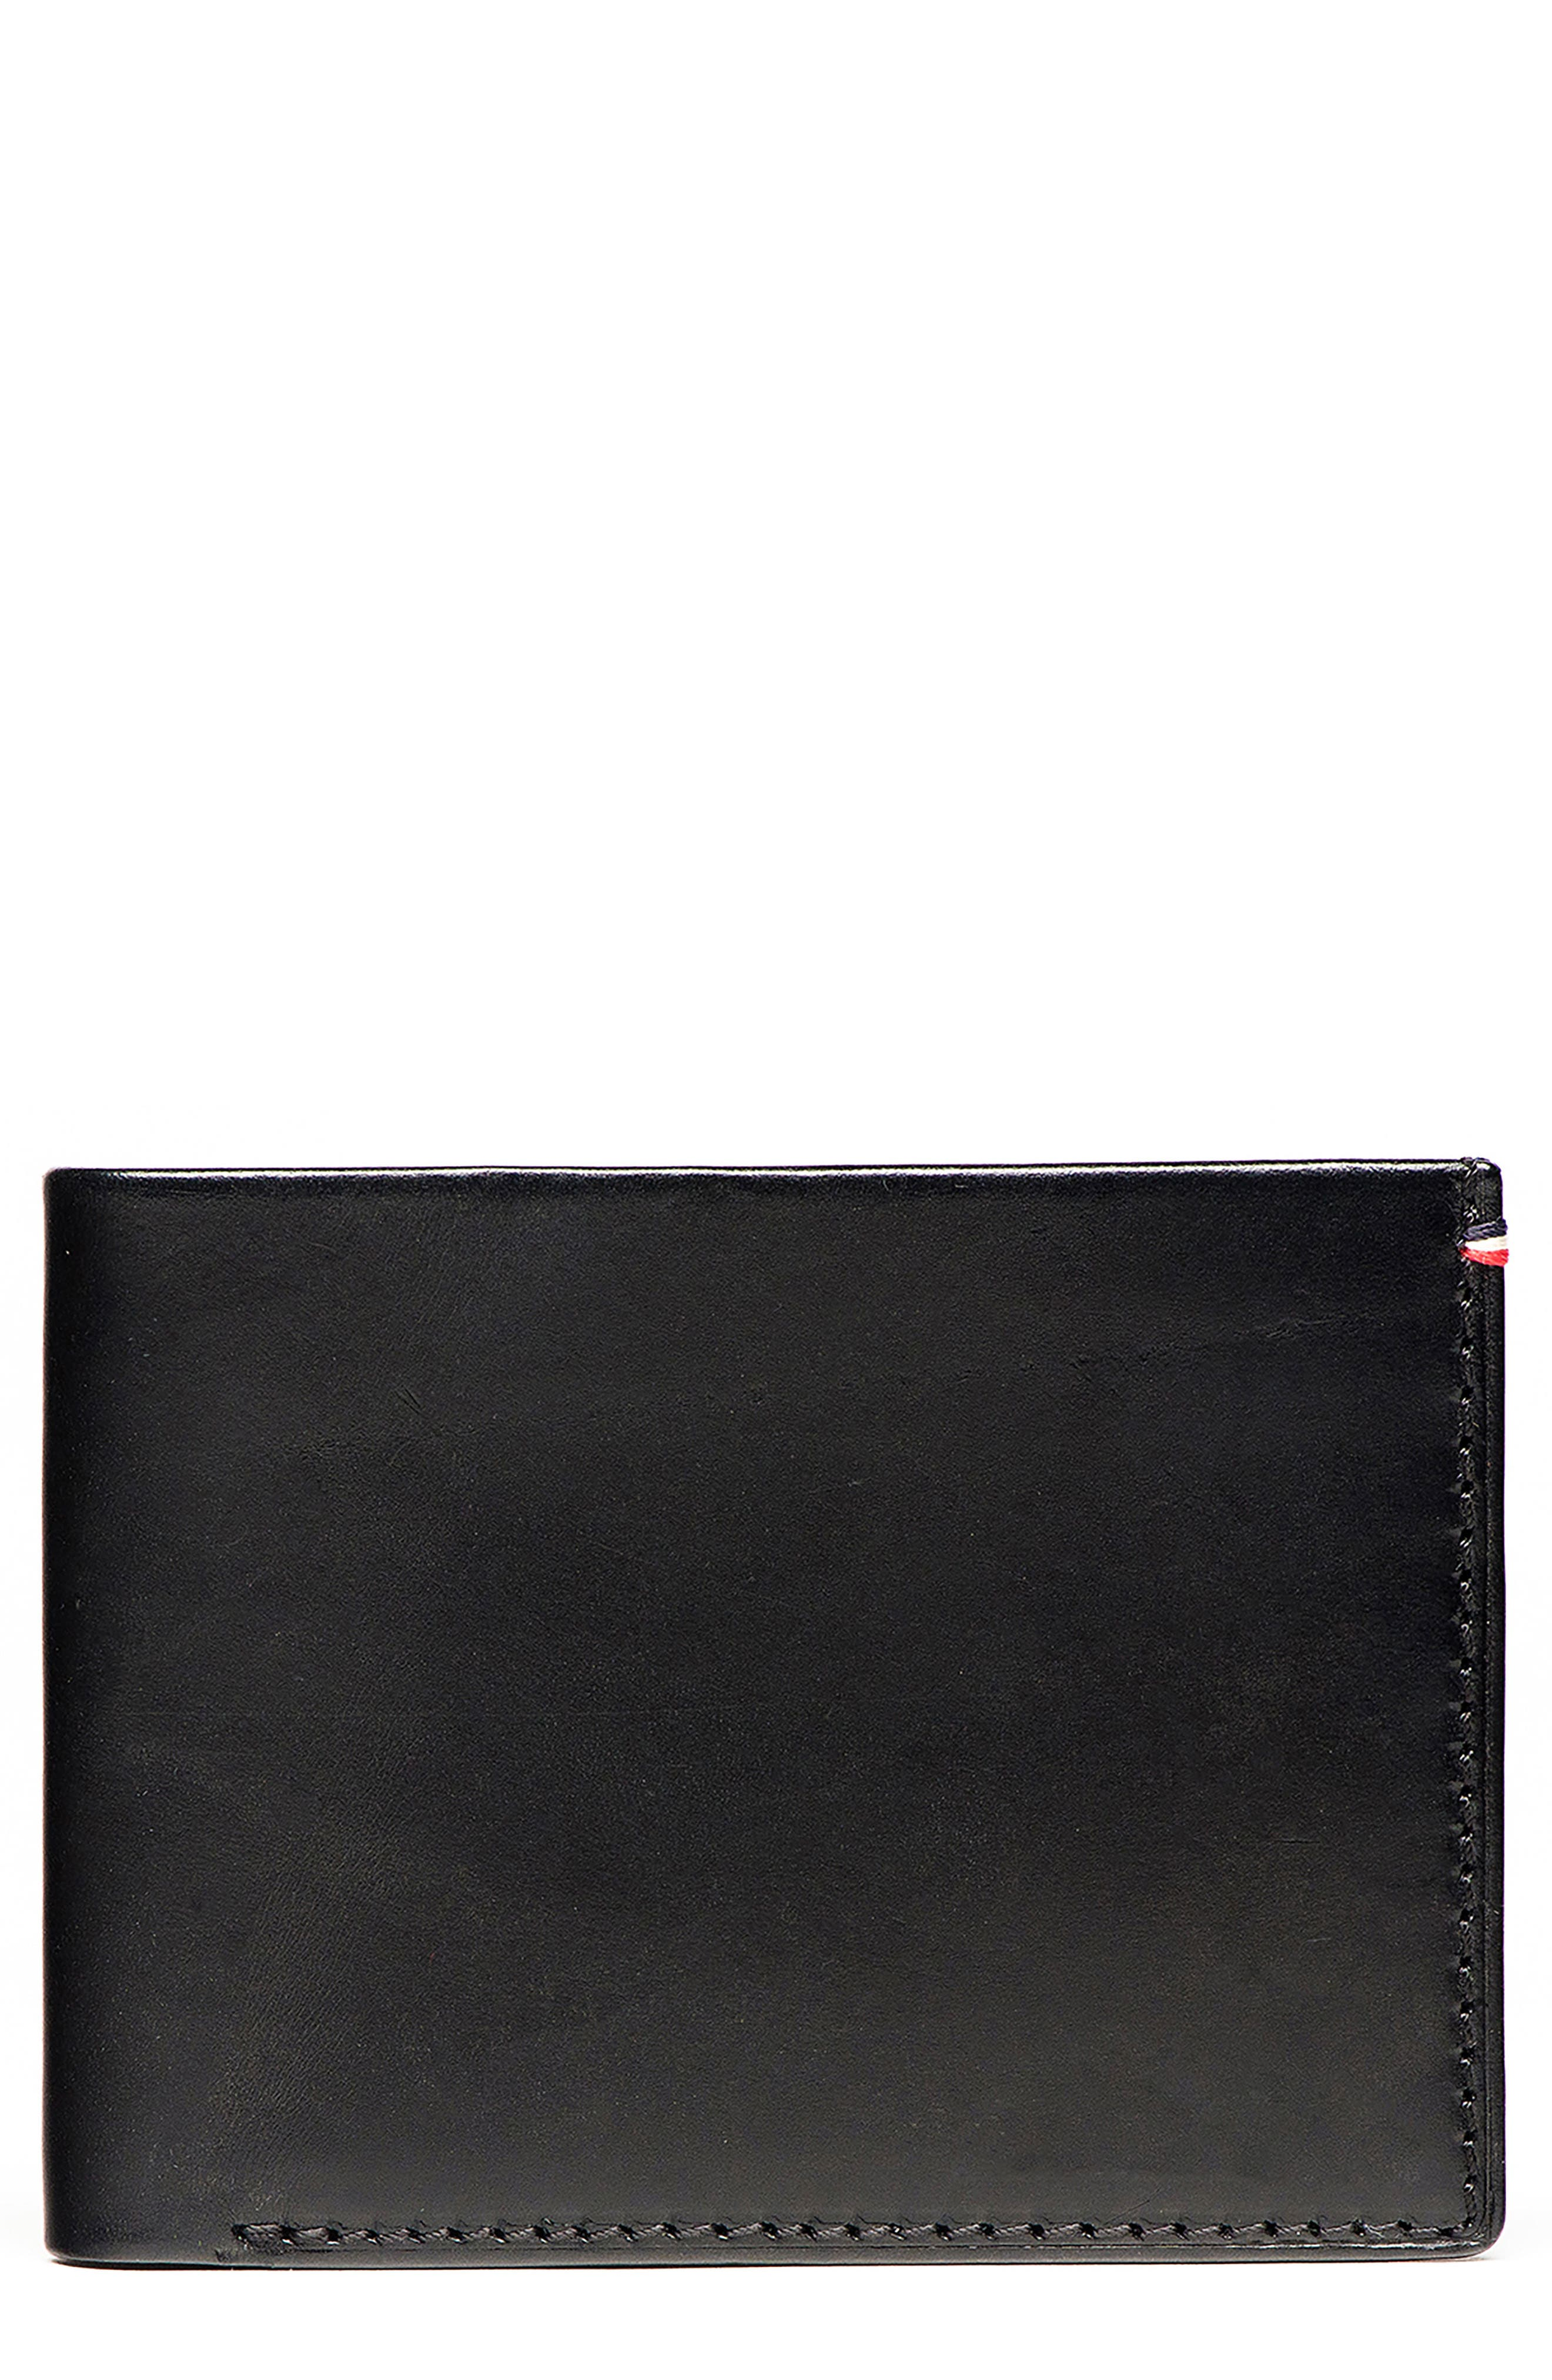 Core Leather Wallet,                             Main thumbnail 1, color,                             Black